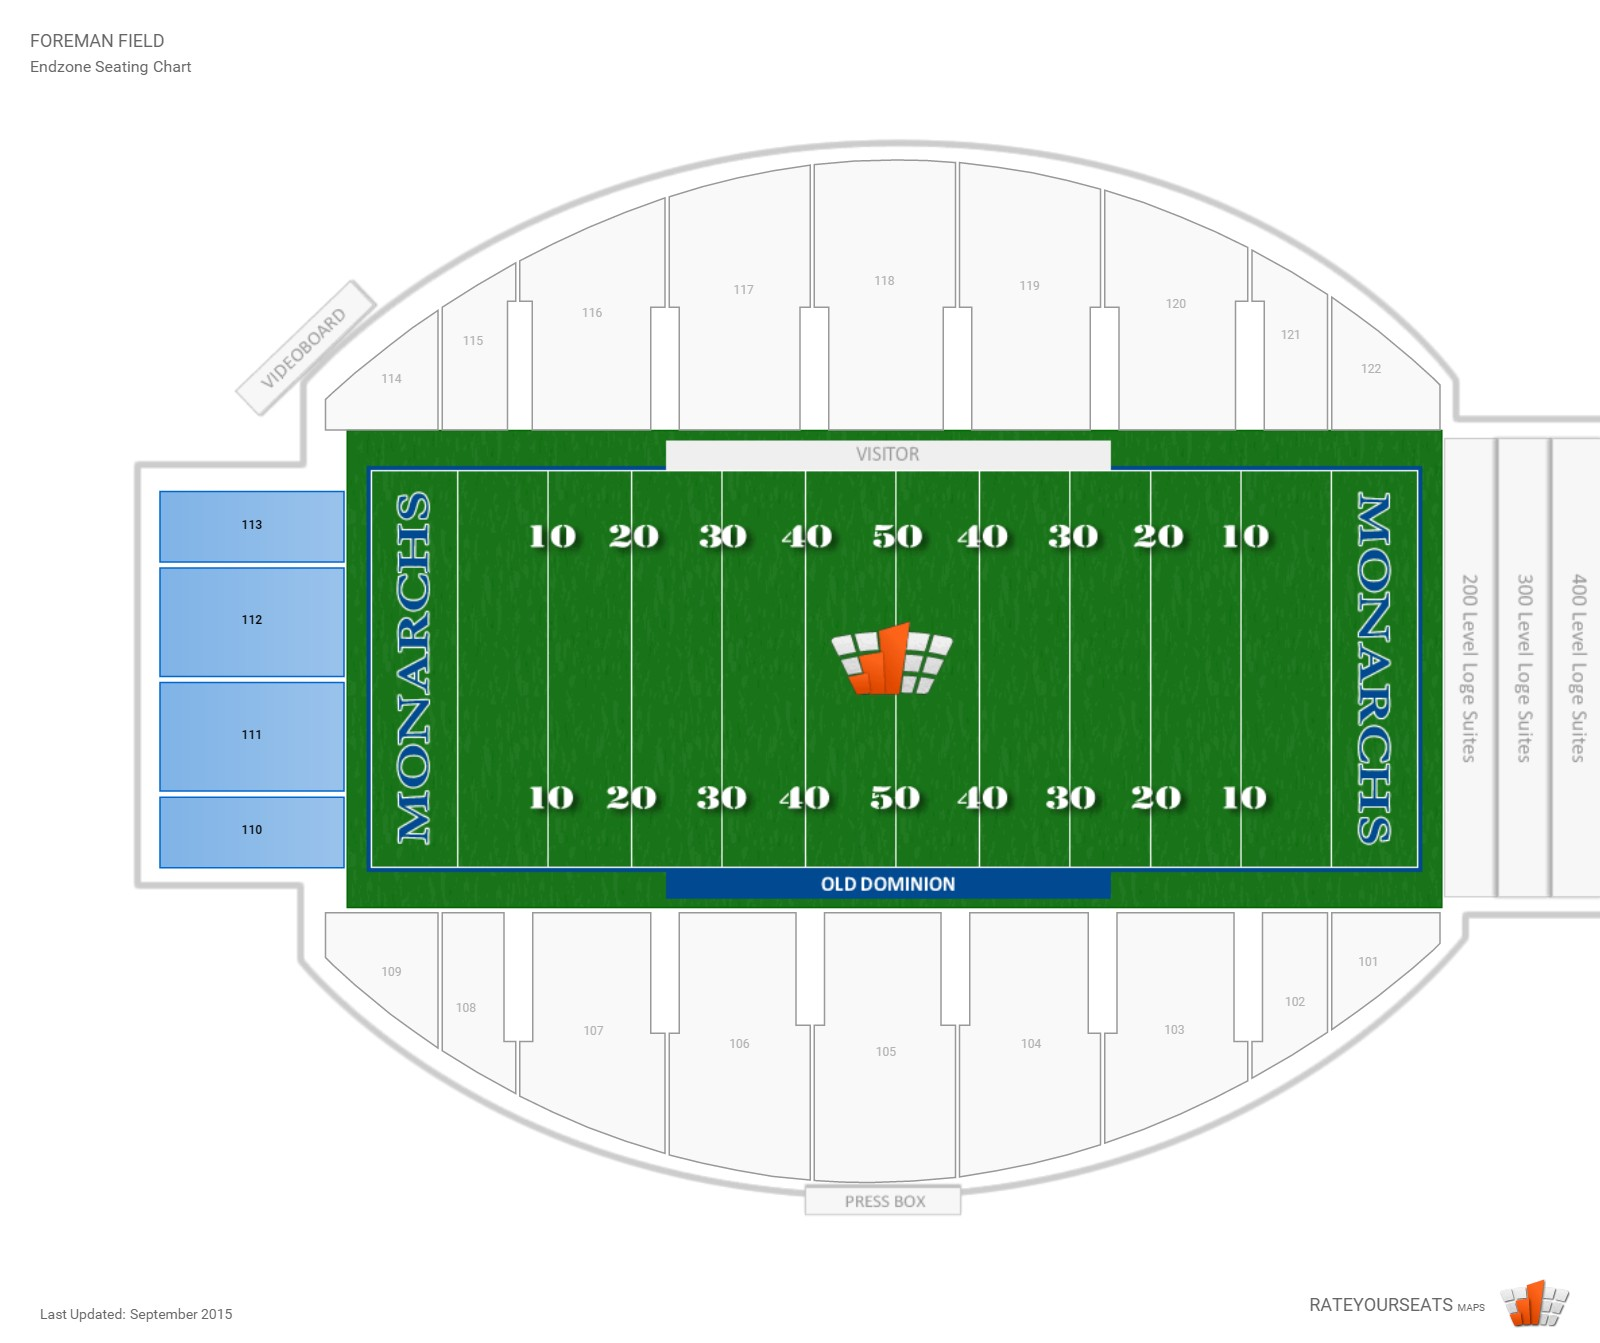 Foreman Field Endzone seating chart